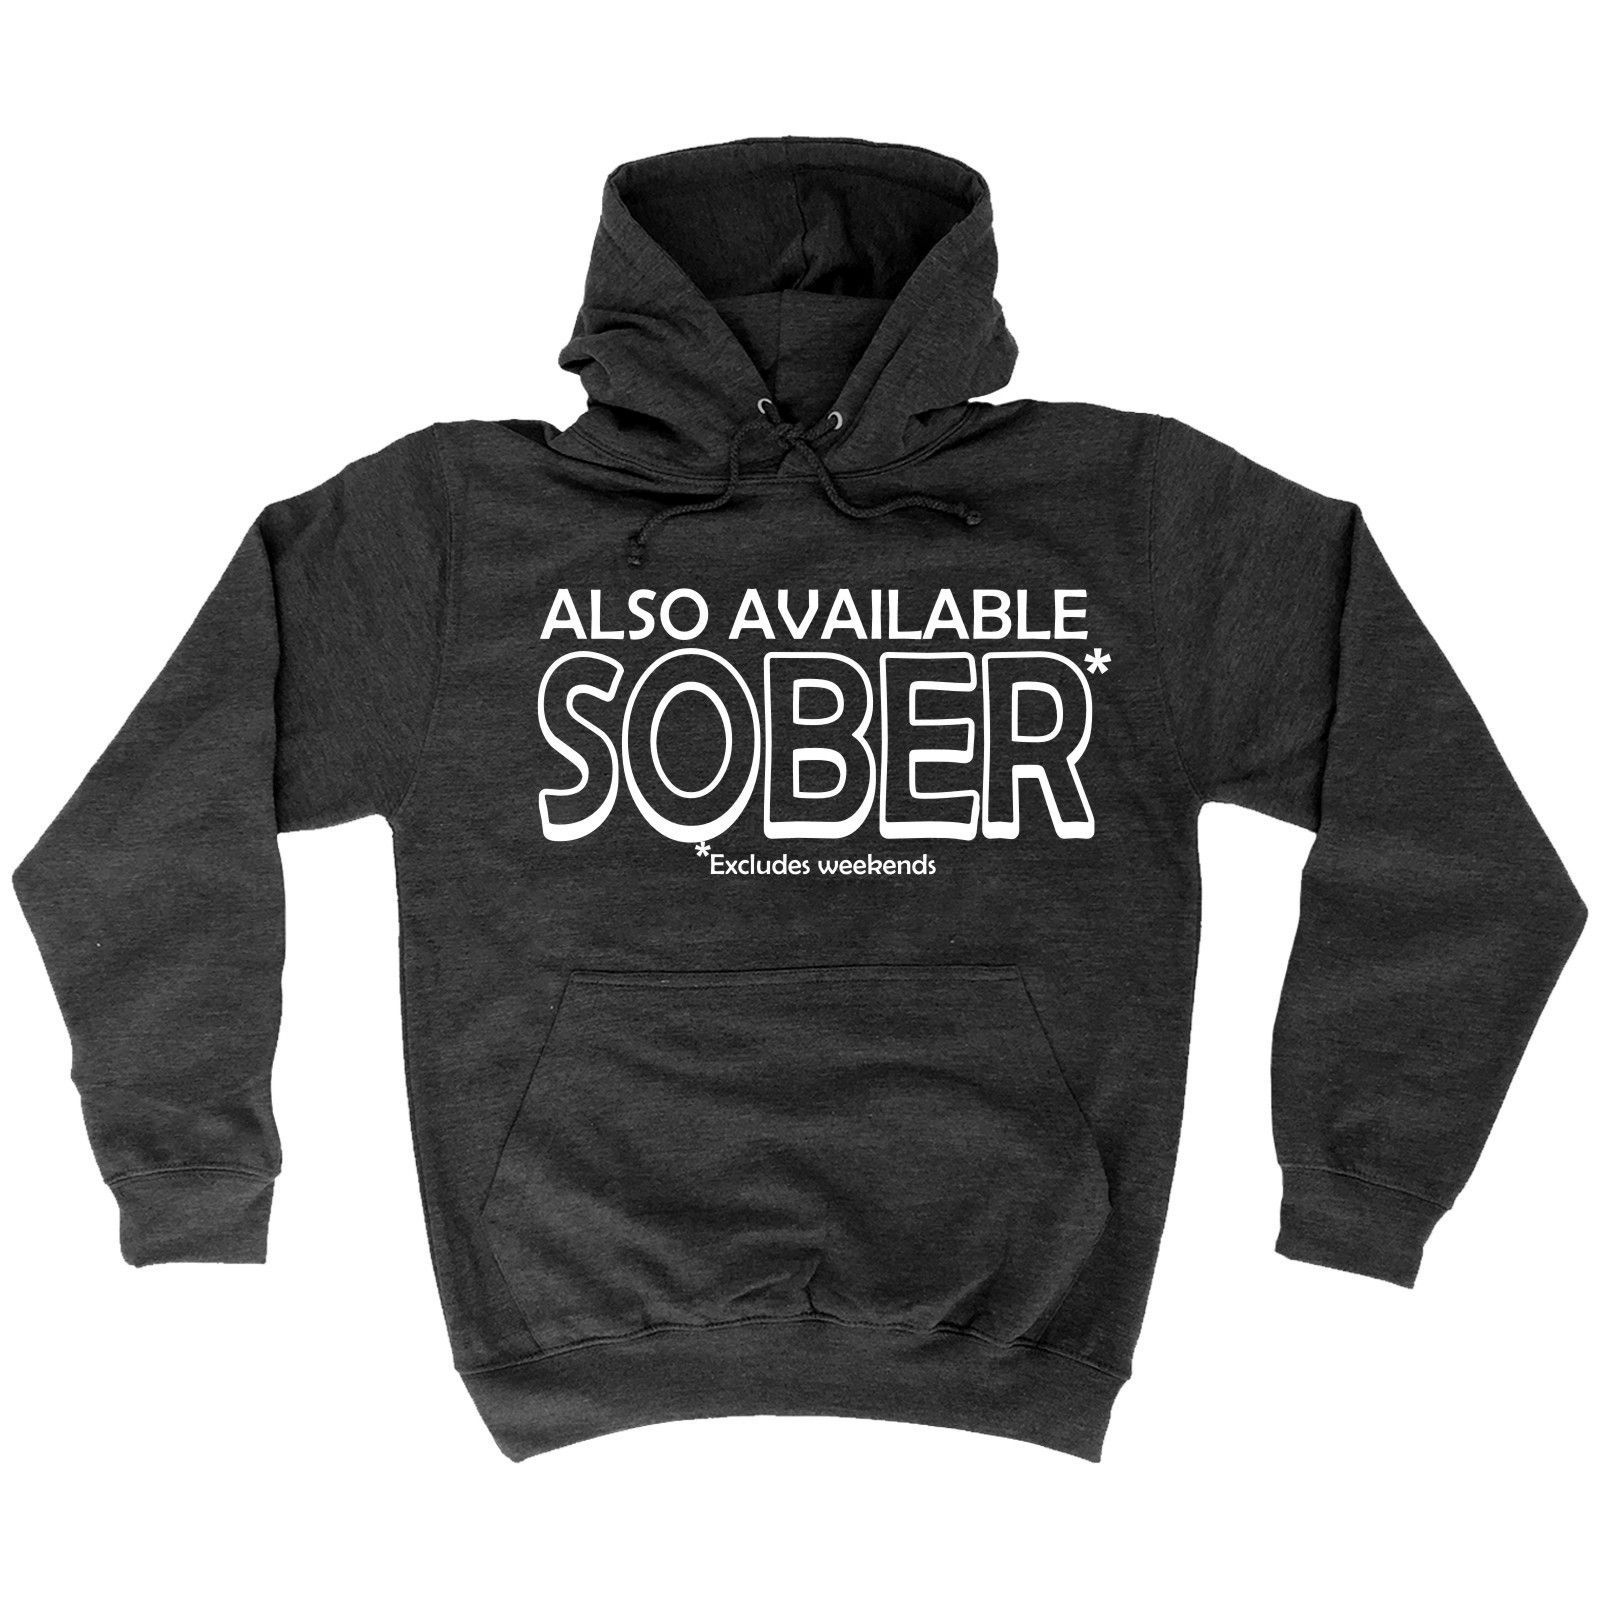 48c5cf1905 123t USA Also Available Sober Excludes Weekends Funny Hoodie - 123t USA T- Shirts & Hoodies